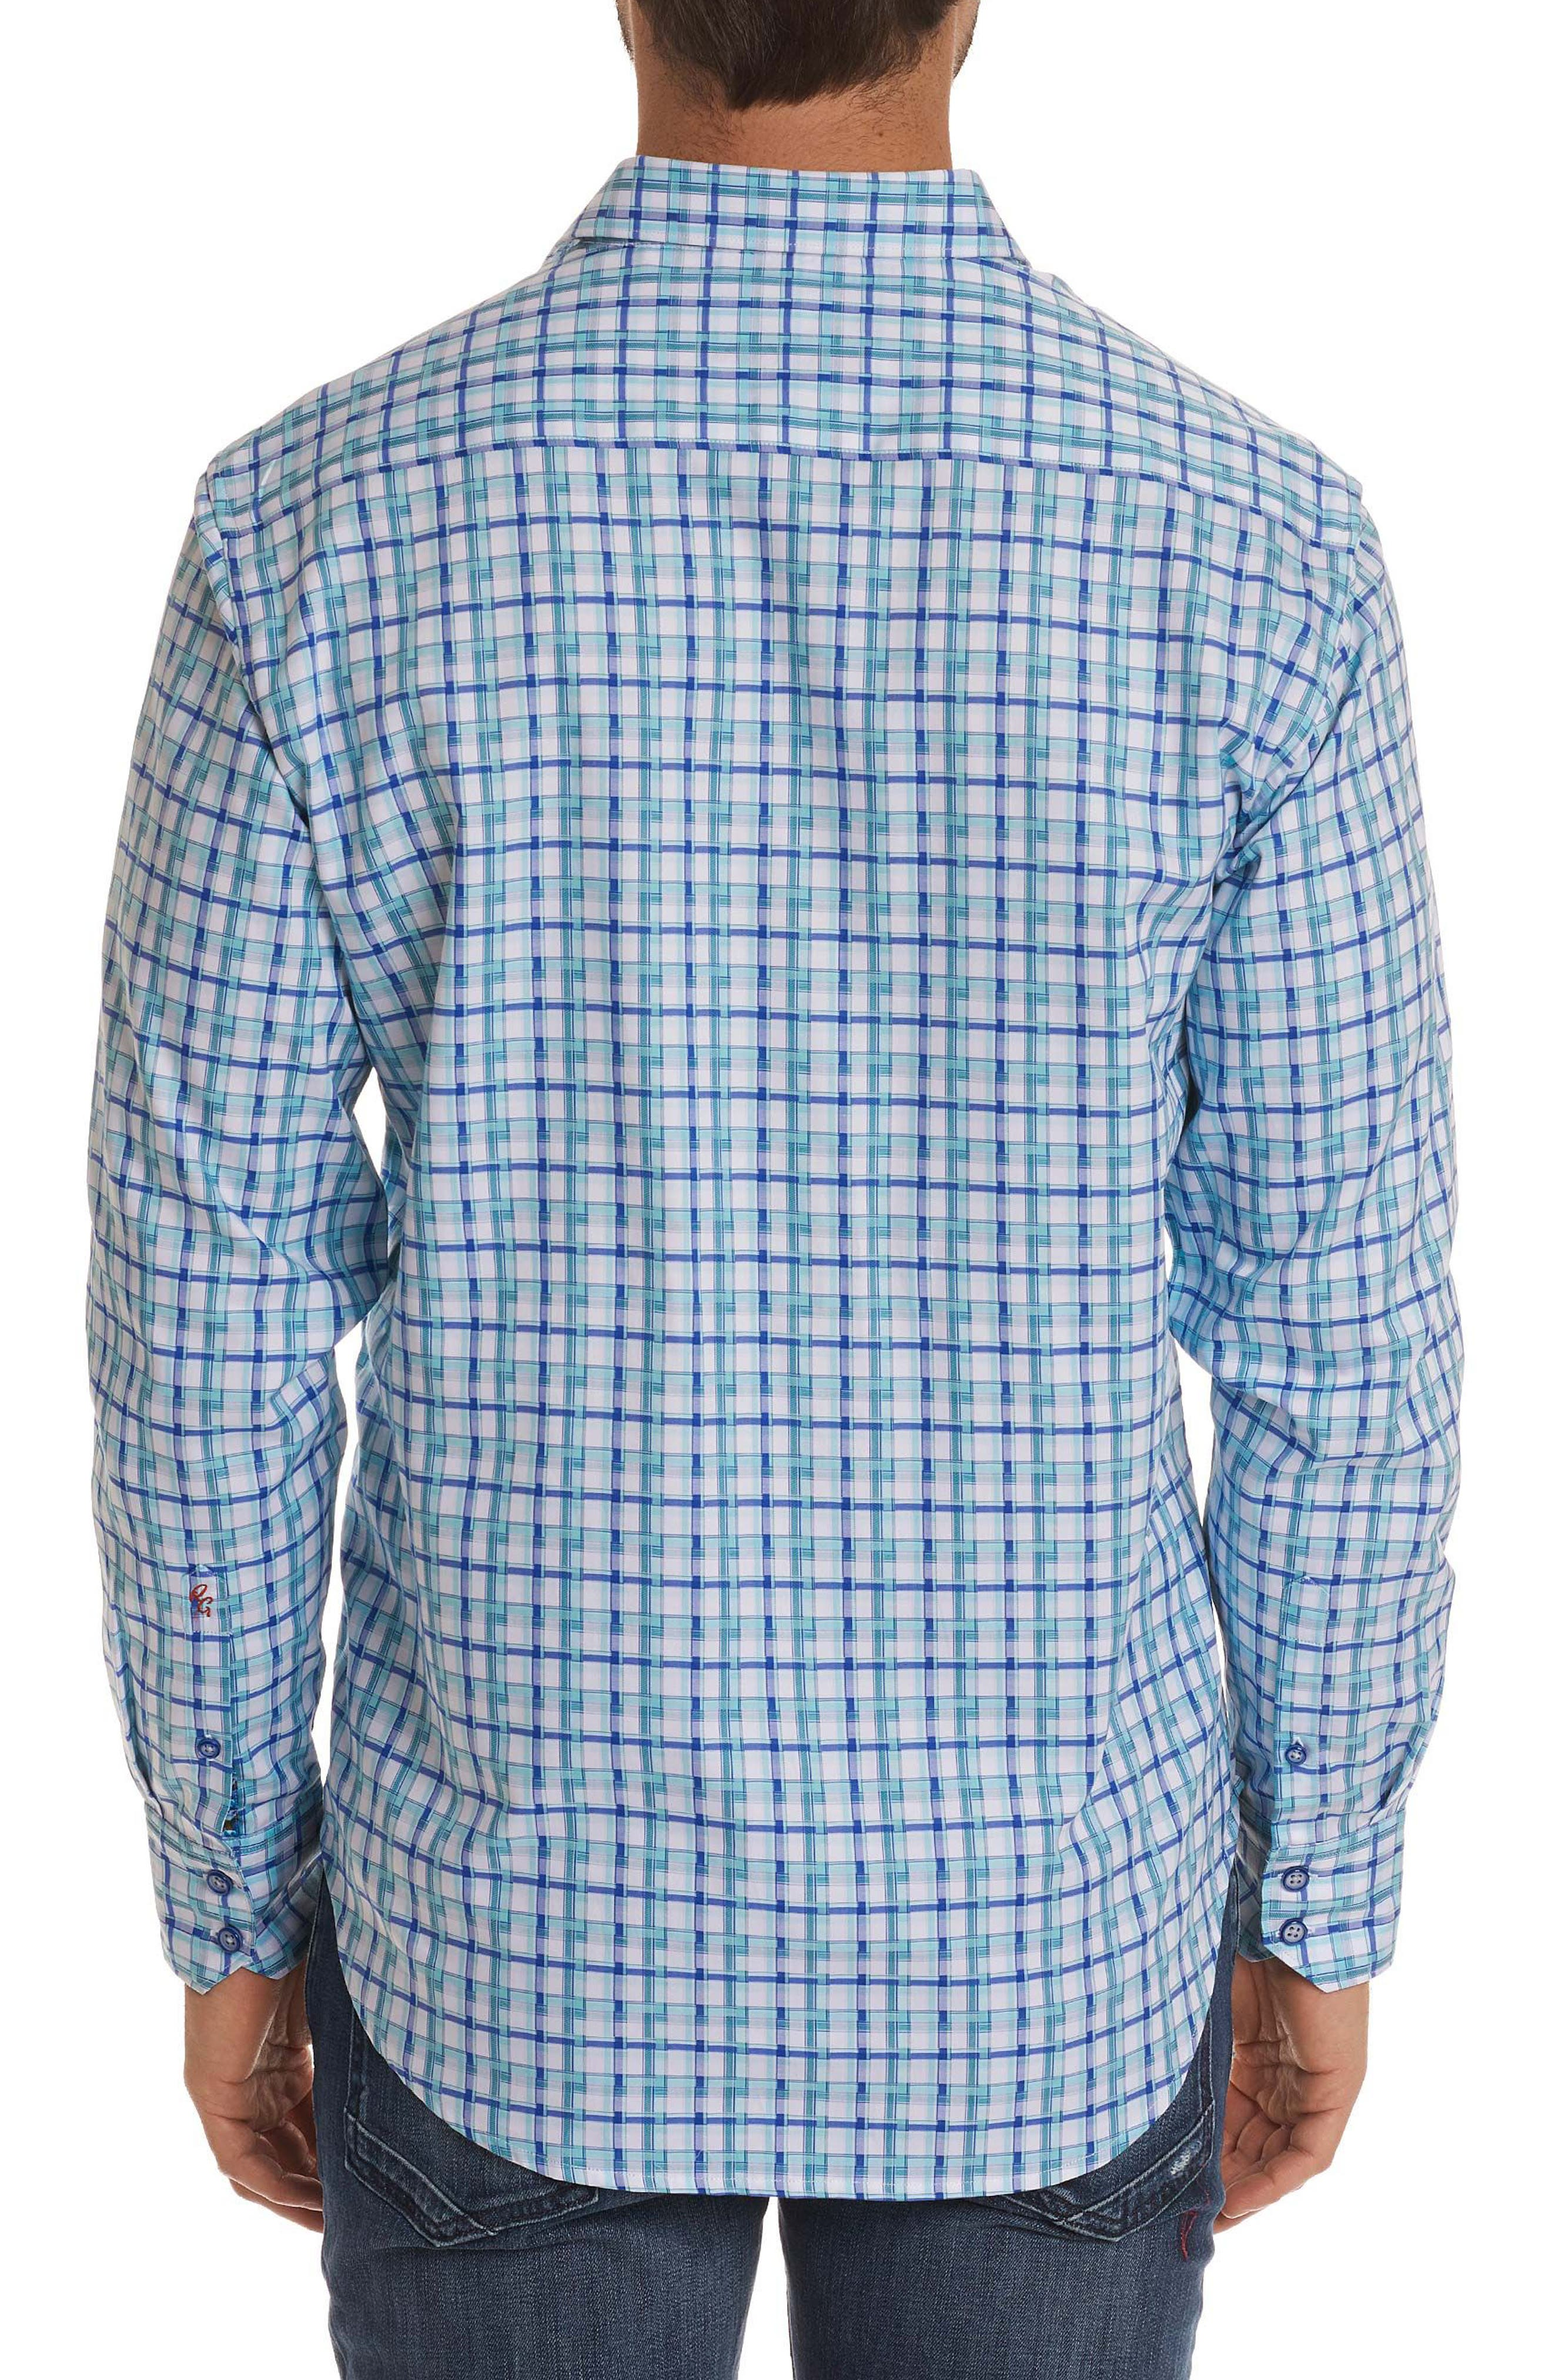 Grouper Classic Fit Geo Sport Shirt,                             Alternate thumbnail 2, color,                             444